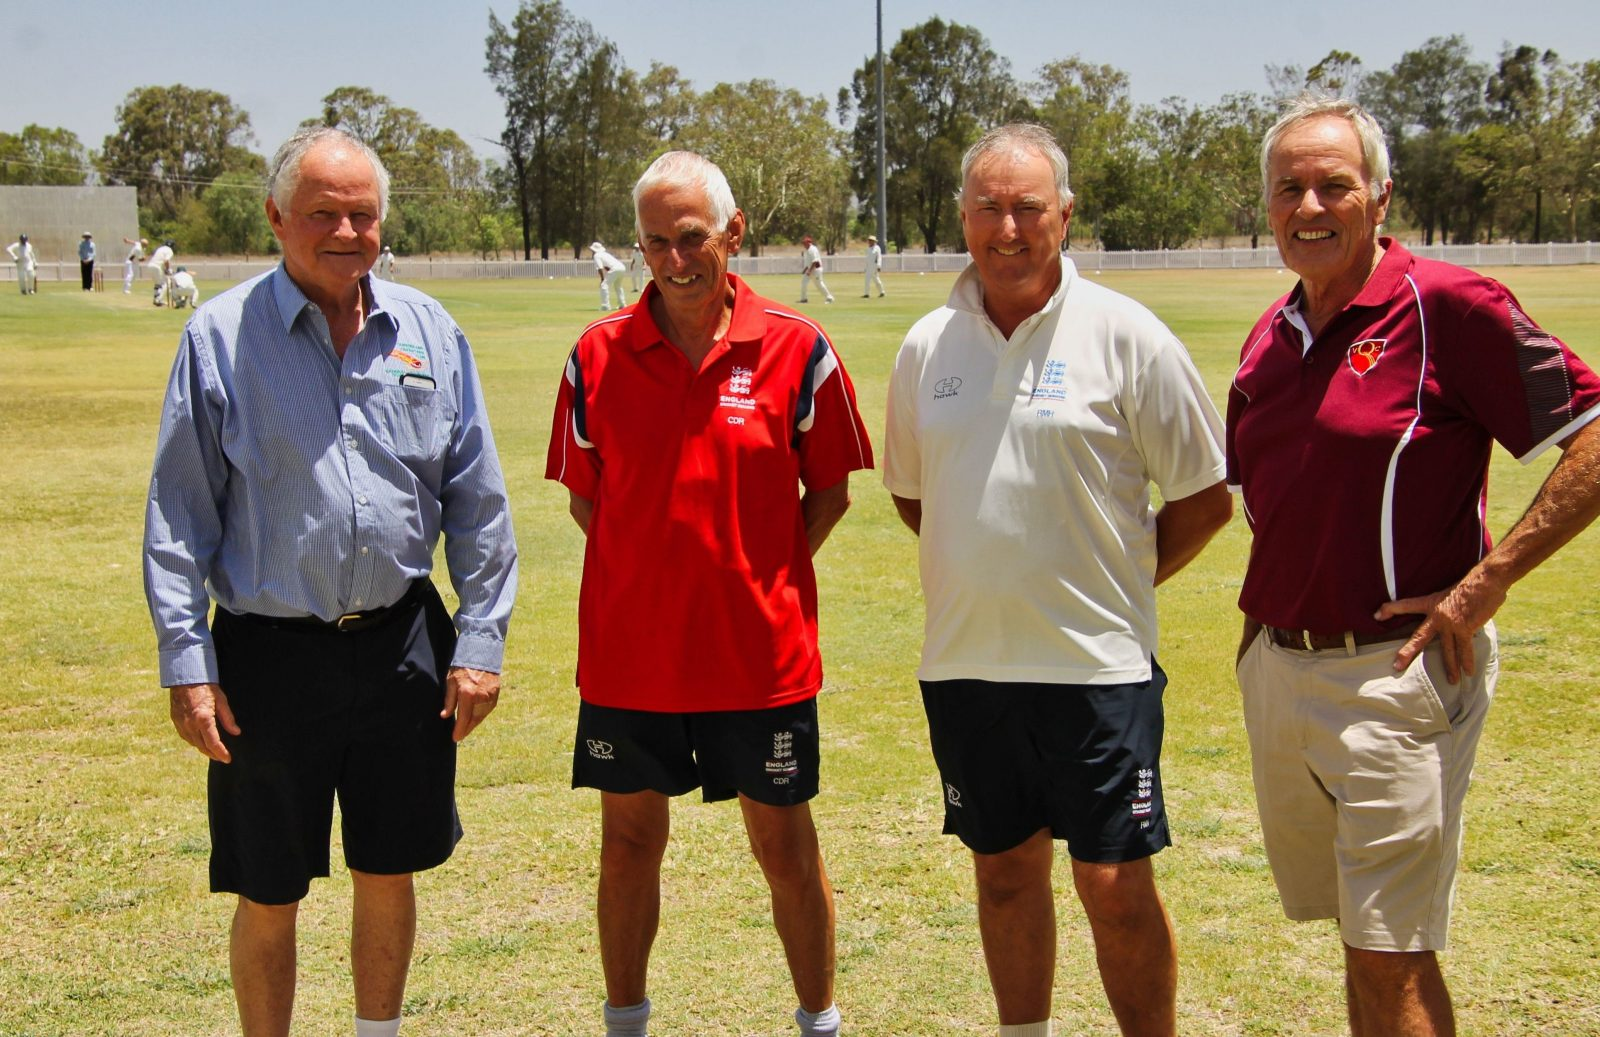 O60's Qld Veterans Patron with Clive, Richard and Kerry at Laidley for the Uk tour match.